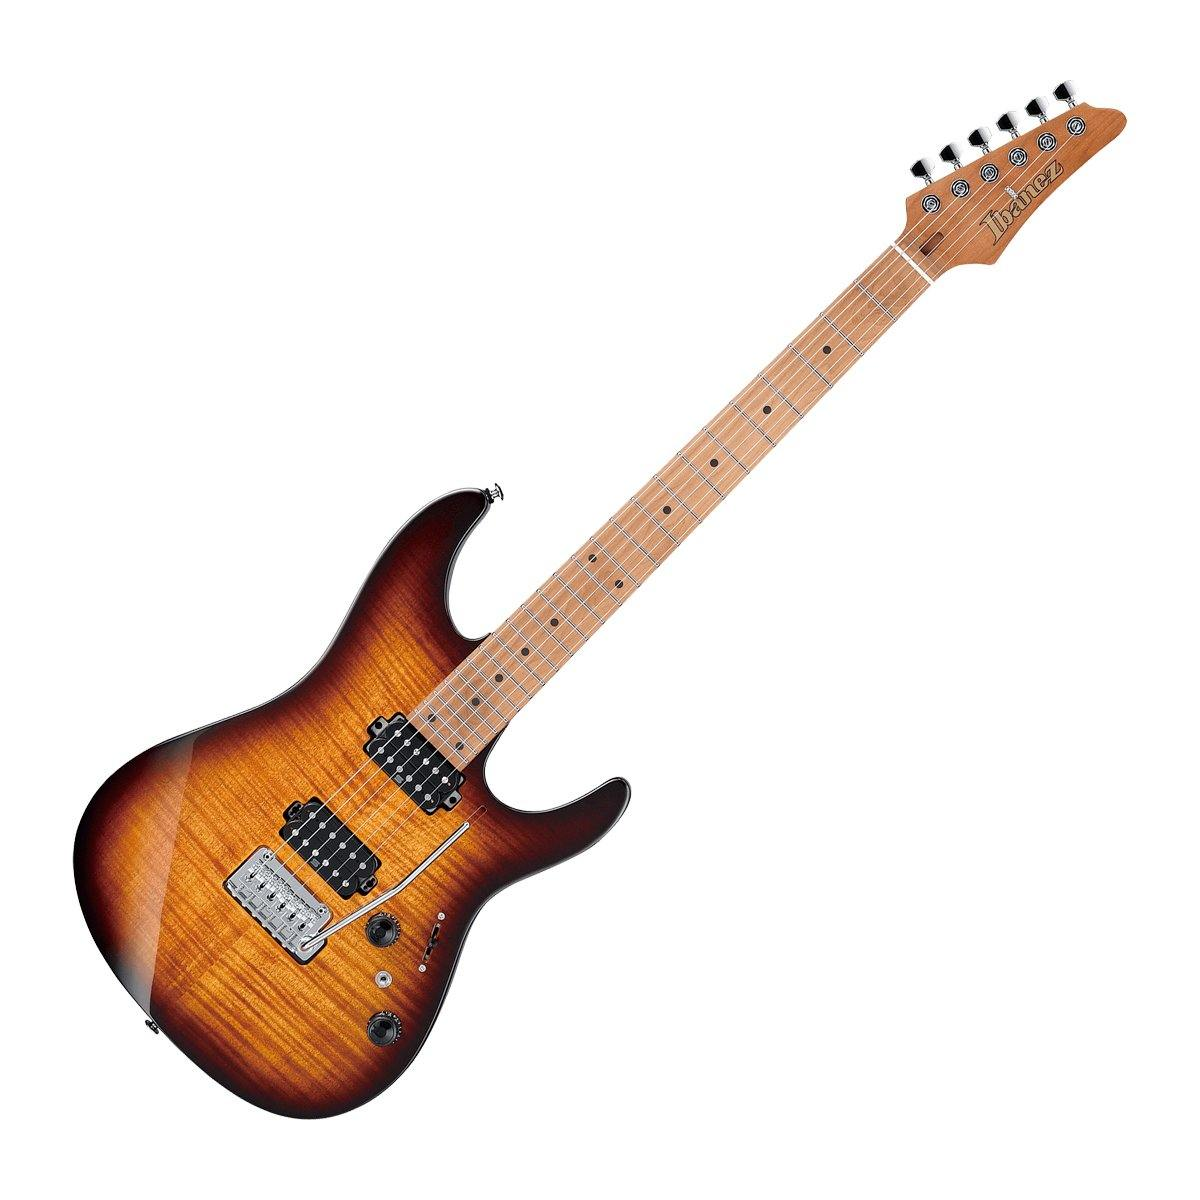 Ibanez AZ242F Premium Electric Guitar w/ Flamed Maple Top - ICONS Shop